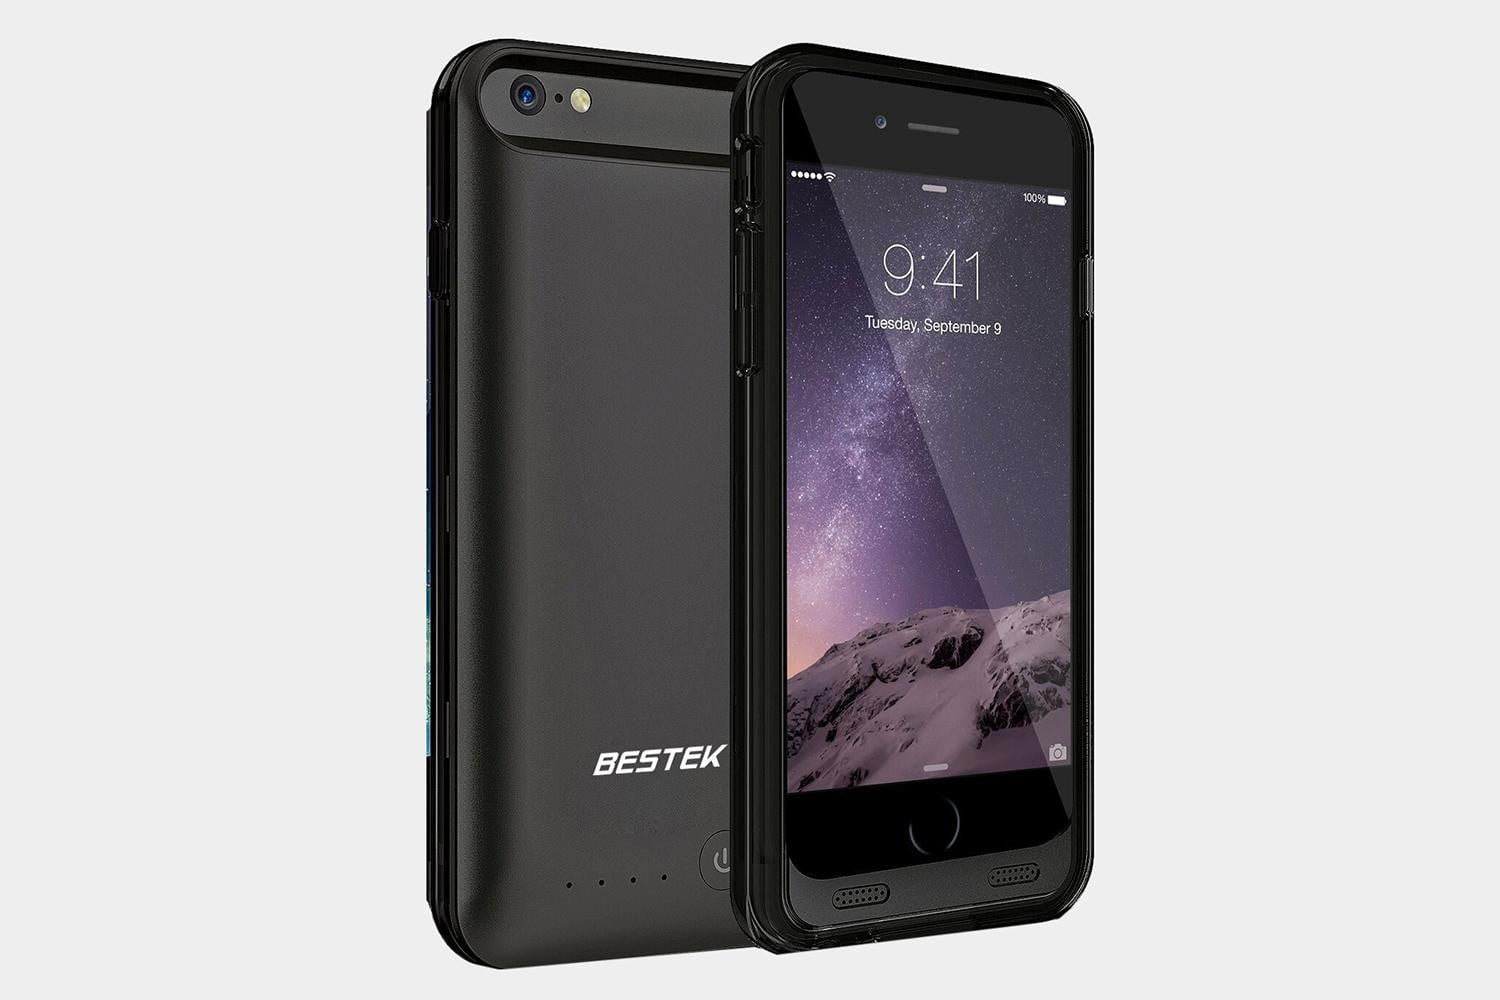 best iphone 6 battery case 10 best iphone 6 battery cases page 2 digital trends 16658